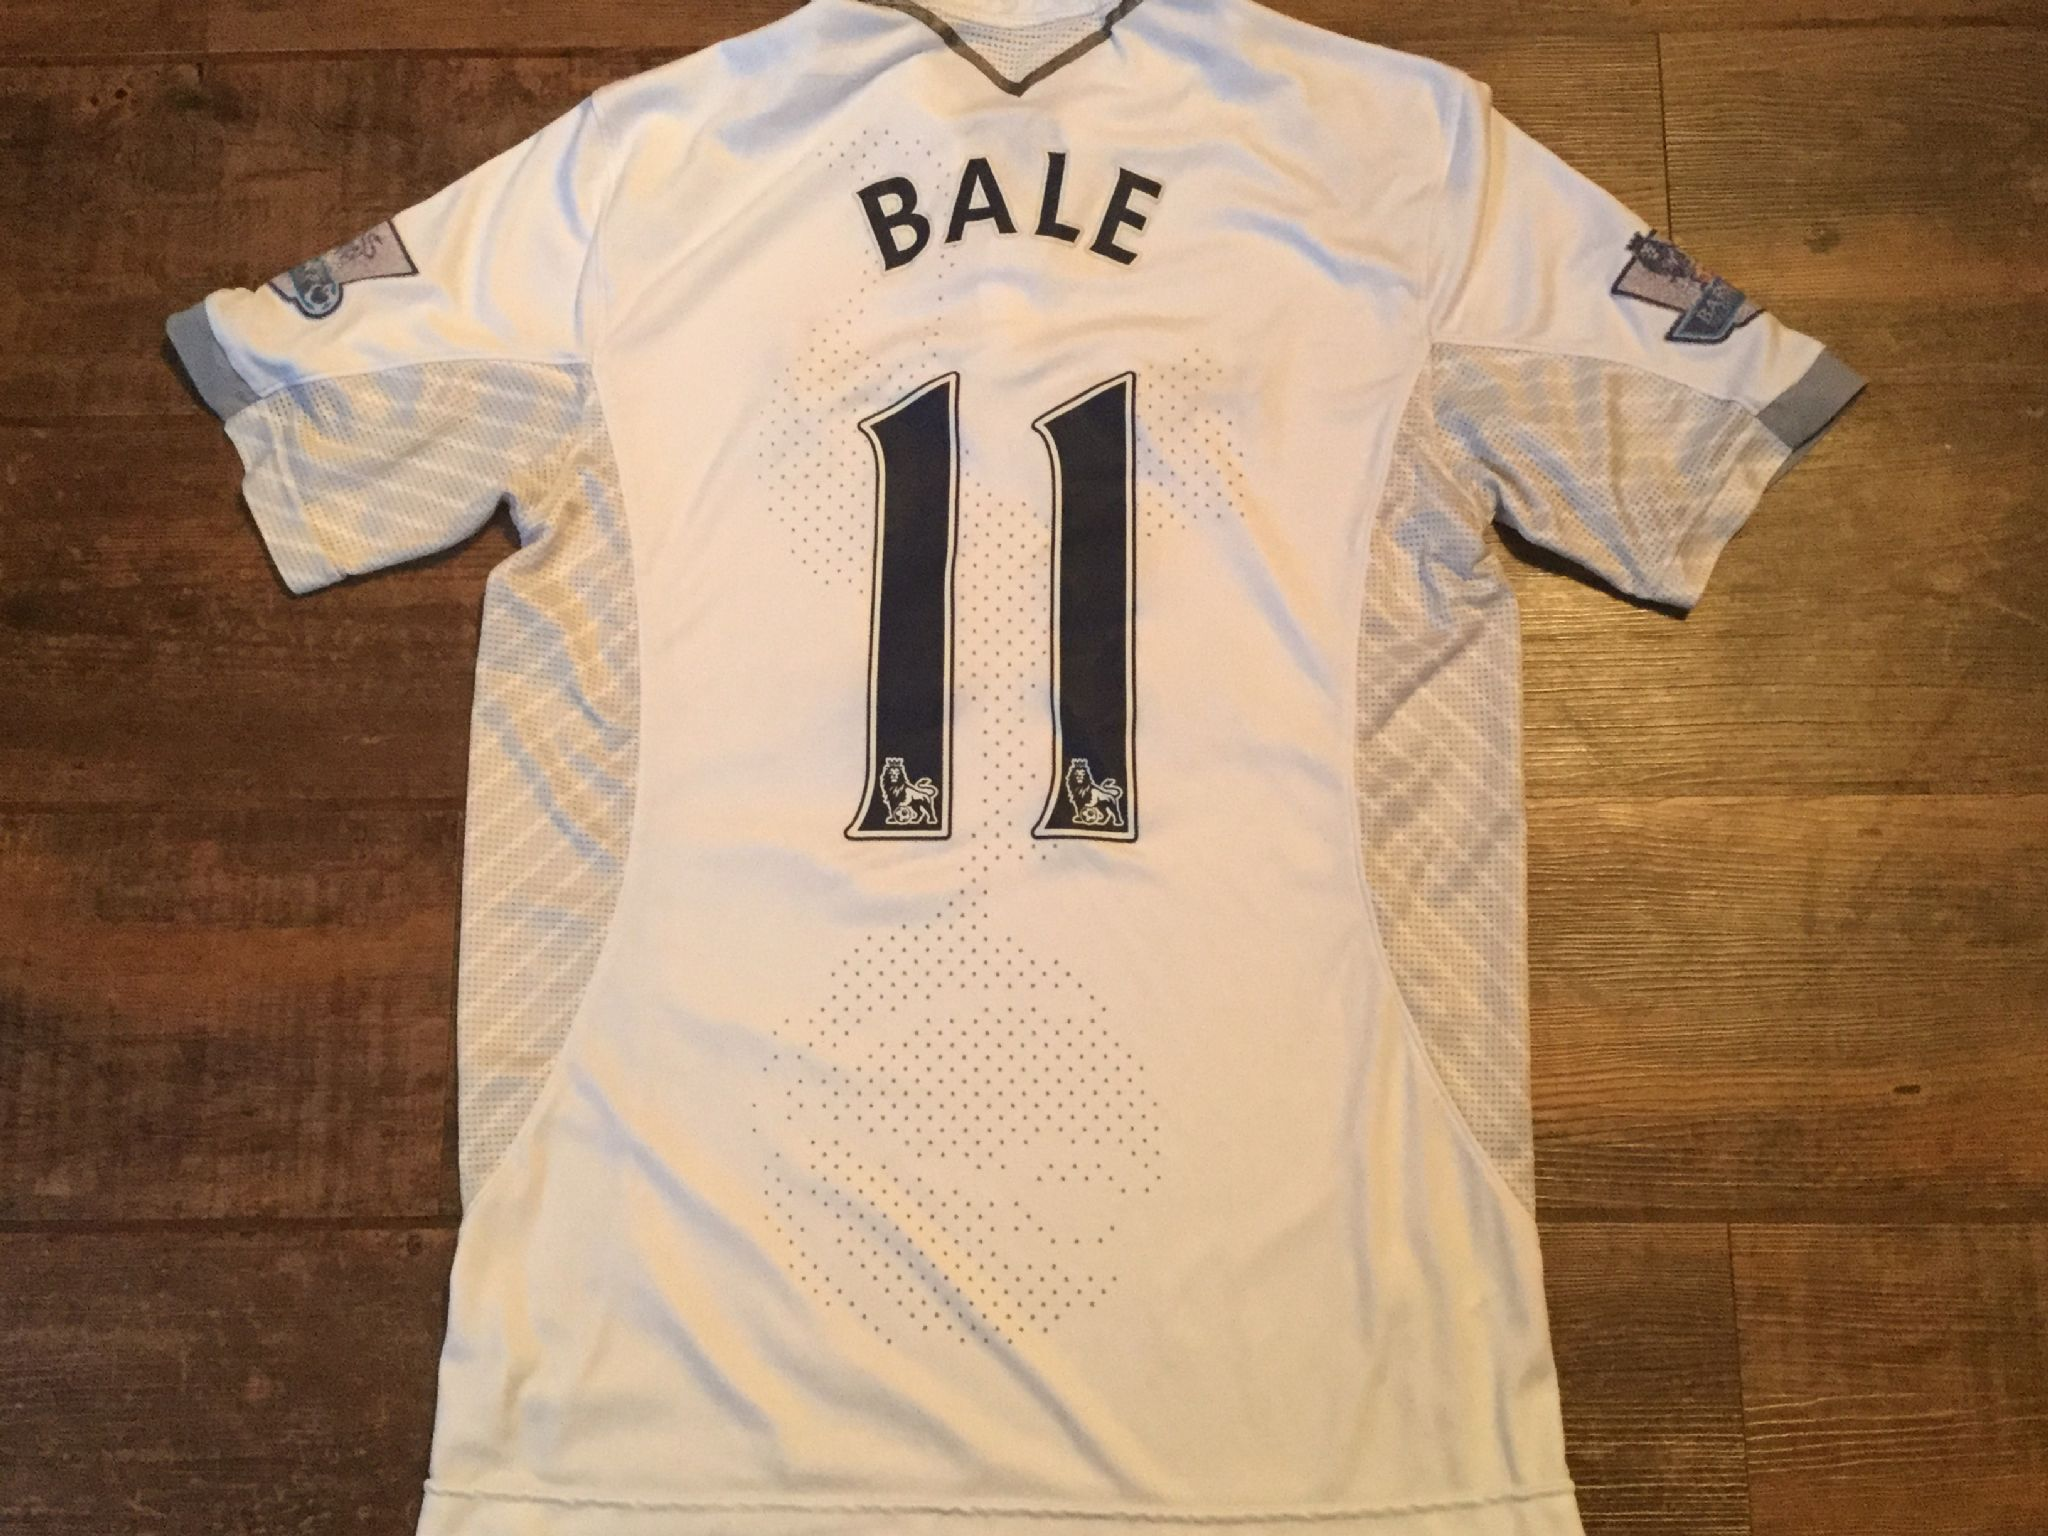 premium selection 6779c 7546c Global Football Shirts | 2012 Tottenham Bale Vintage Old ...